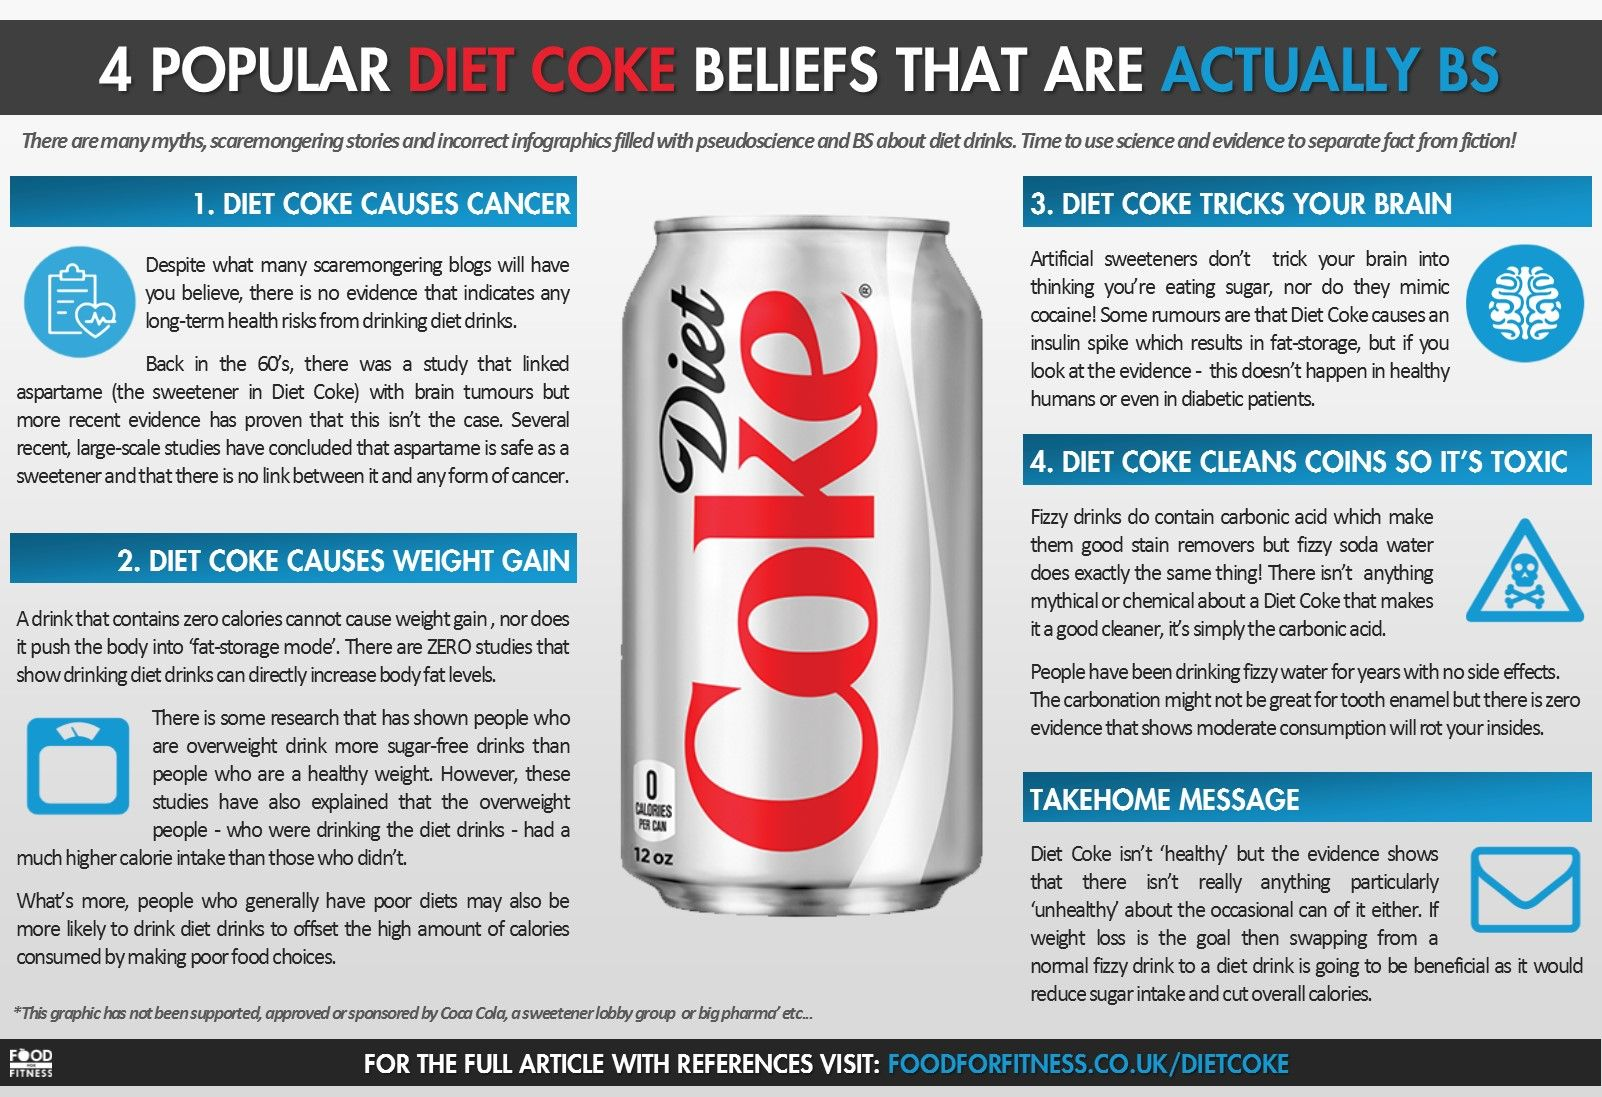 why is diet coke so bad for you?